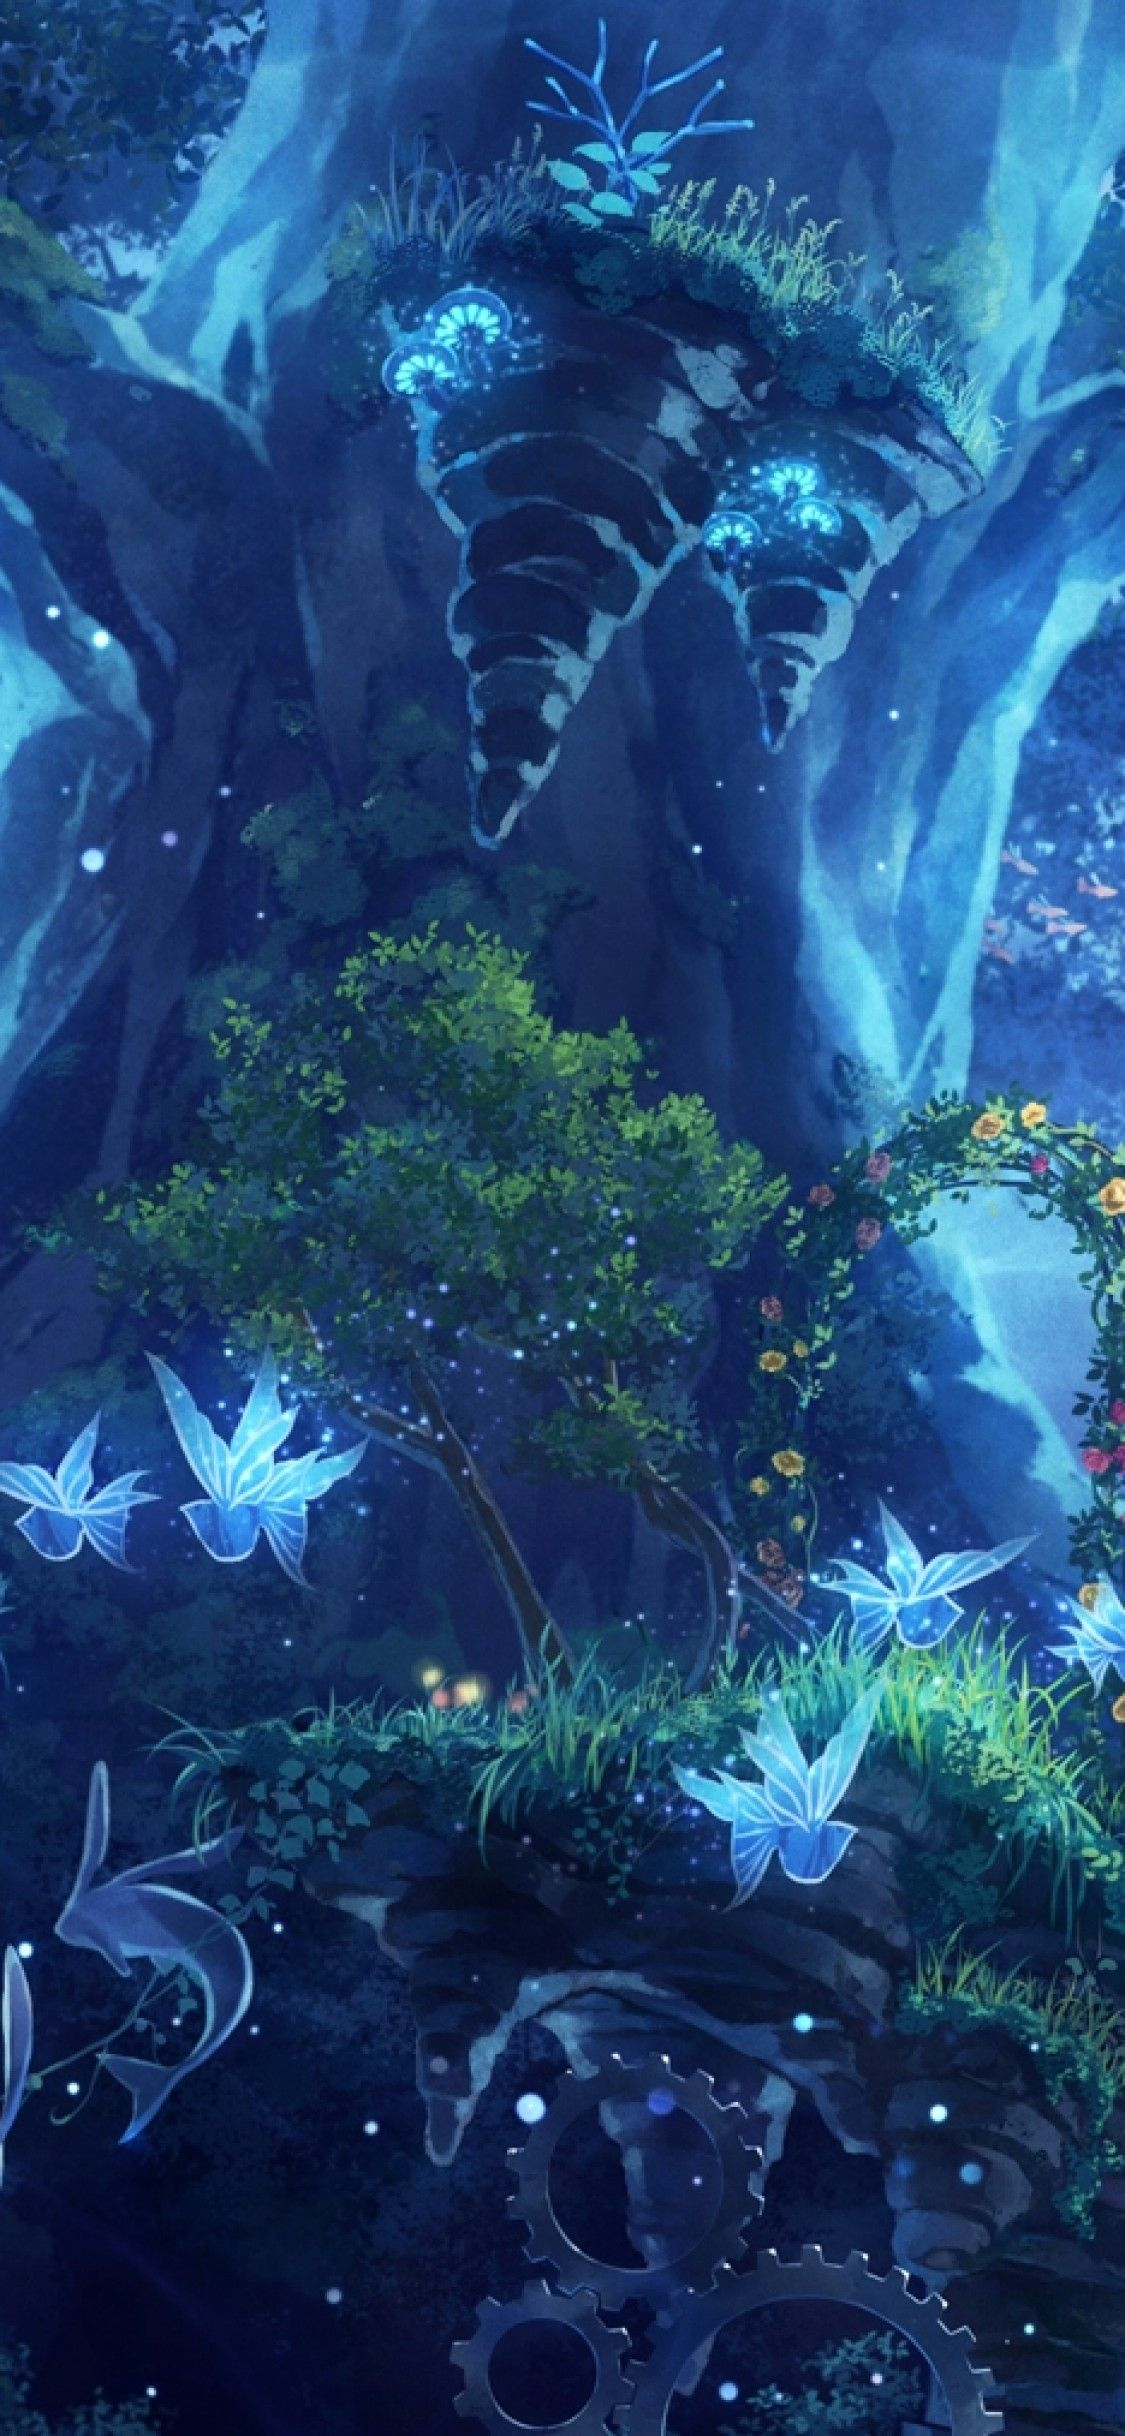 1125x2436 Download 1125x2436 Anime Girl, Fairy Forest, Butterflies, Plants ...